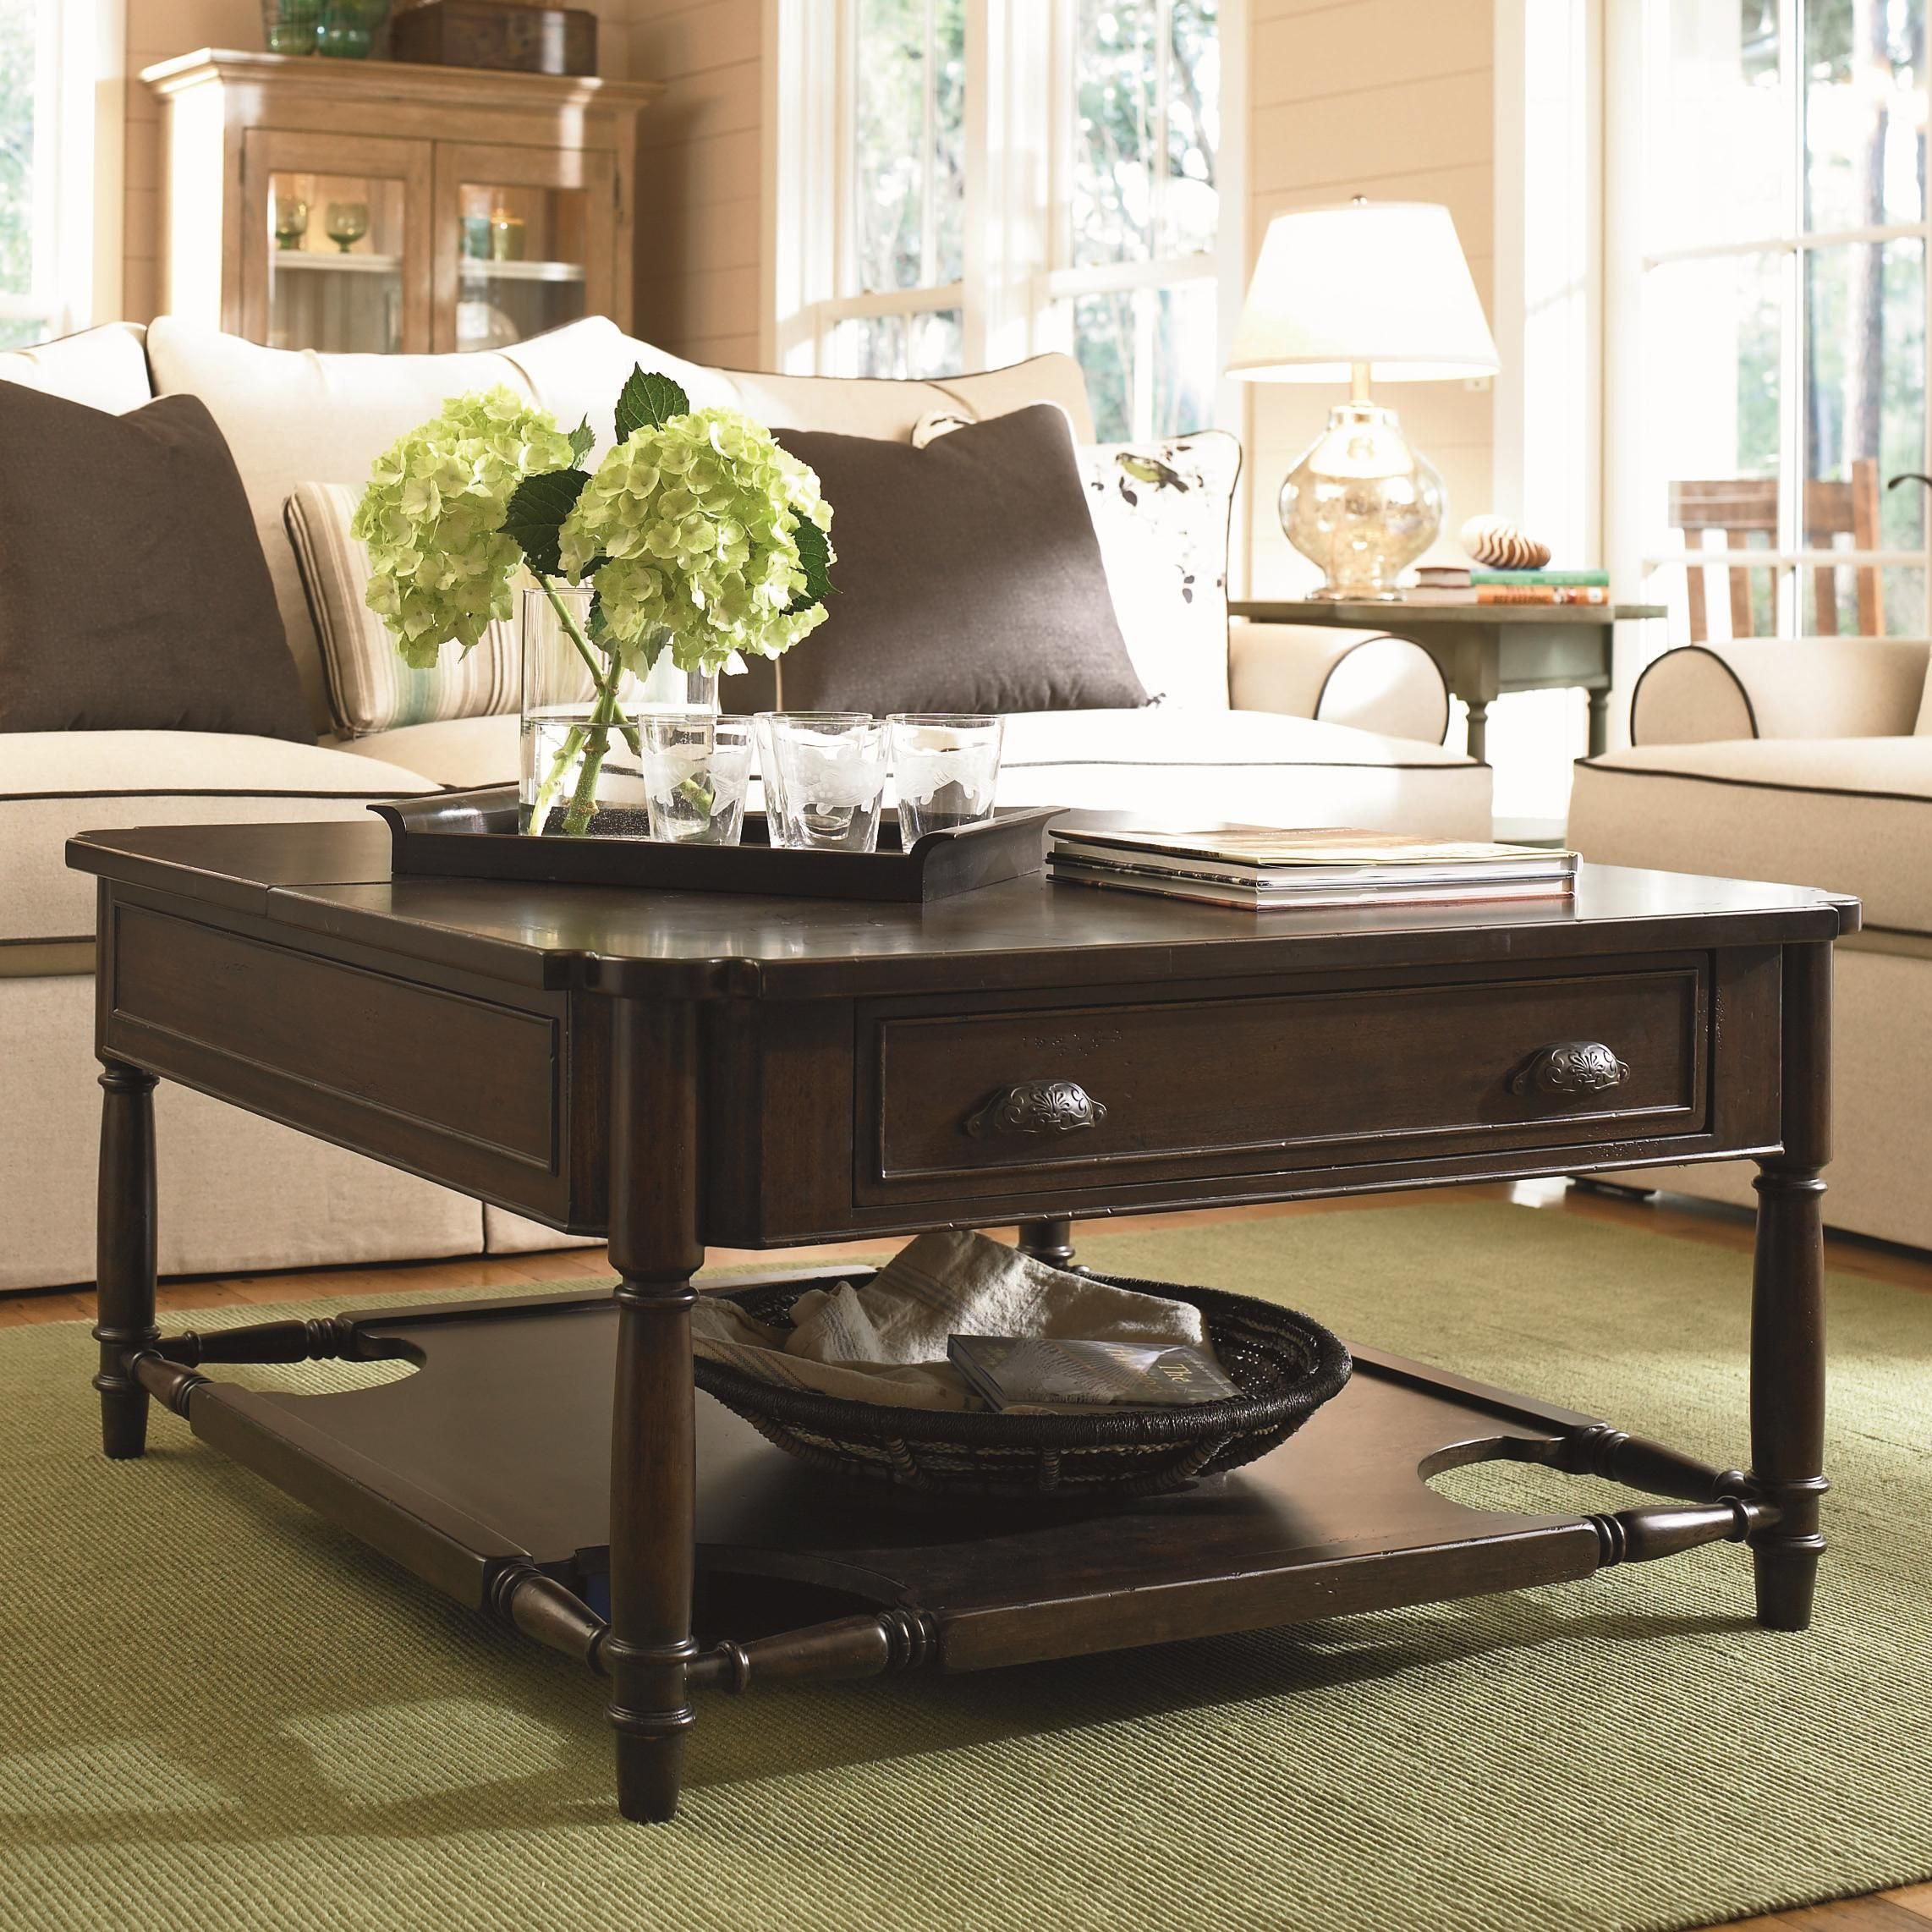 Pin By Miller Brother S Furniture On Furniture Coffee Table Home Furniture [ 2284 x 2284 Pixel ]